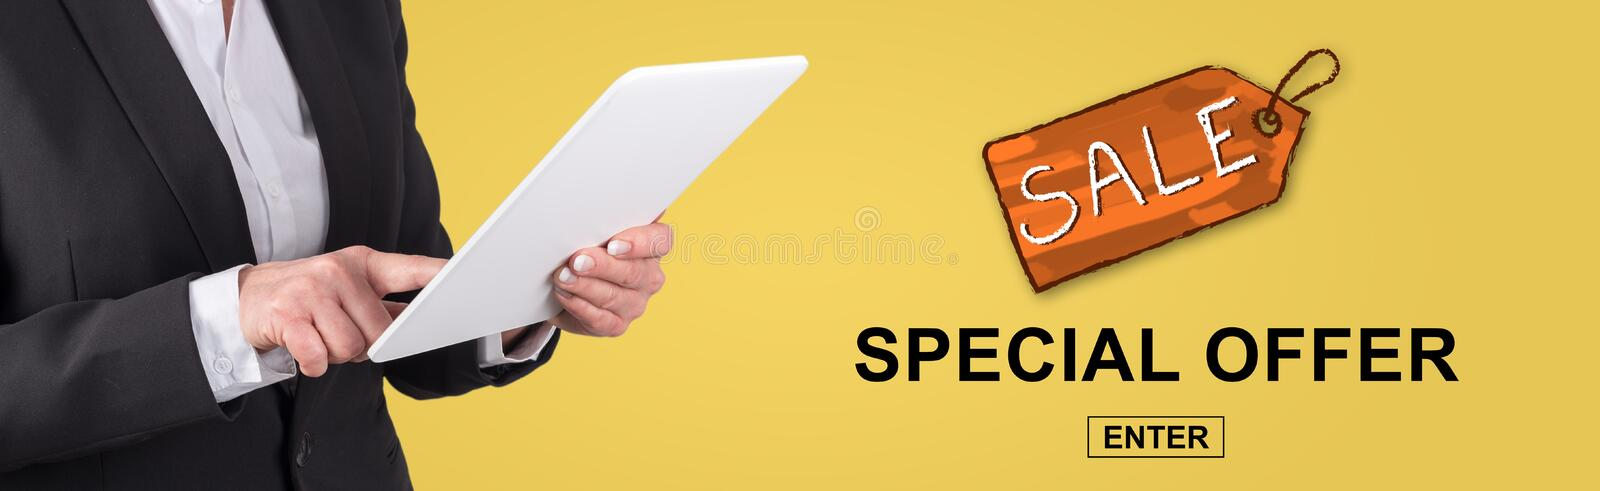 Concept of special offer stock images